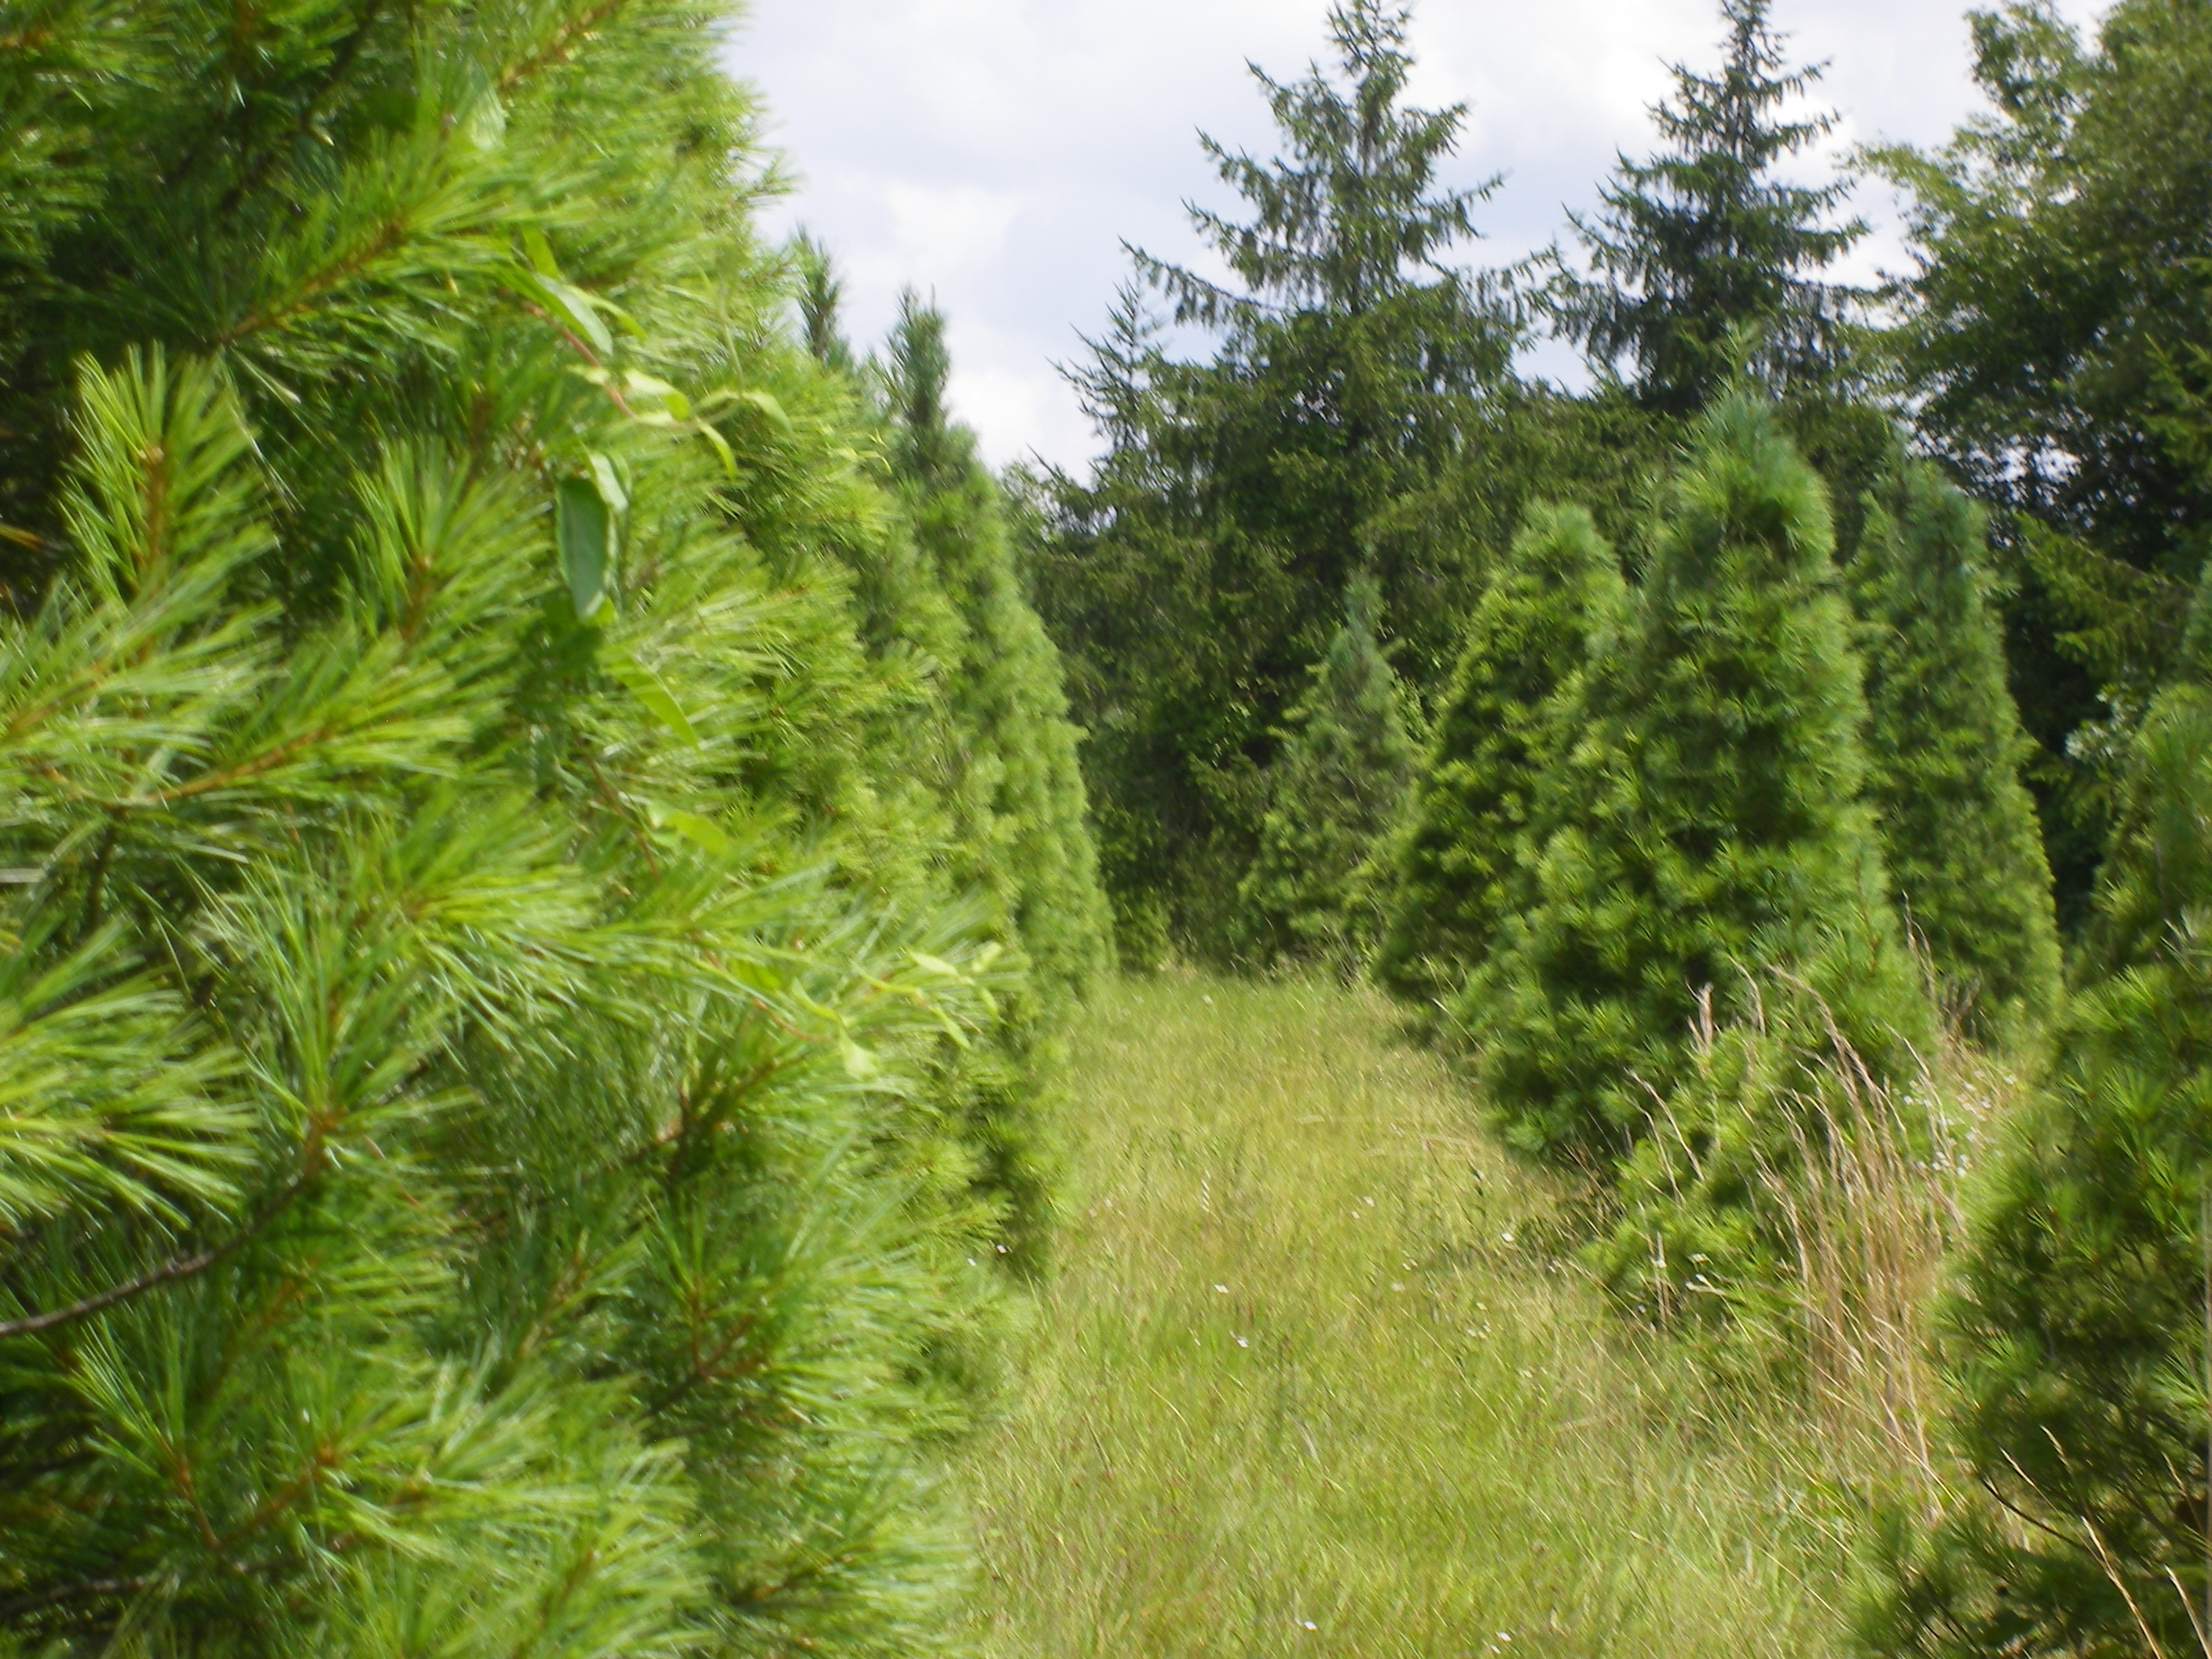 Pinetop Christmas Tree Farm Cut Your Own Tree Pick your own Blueberries.